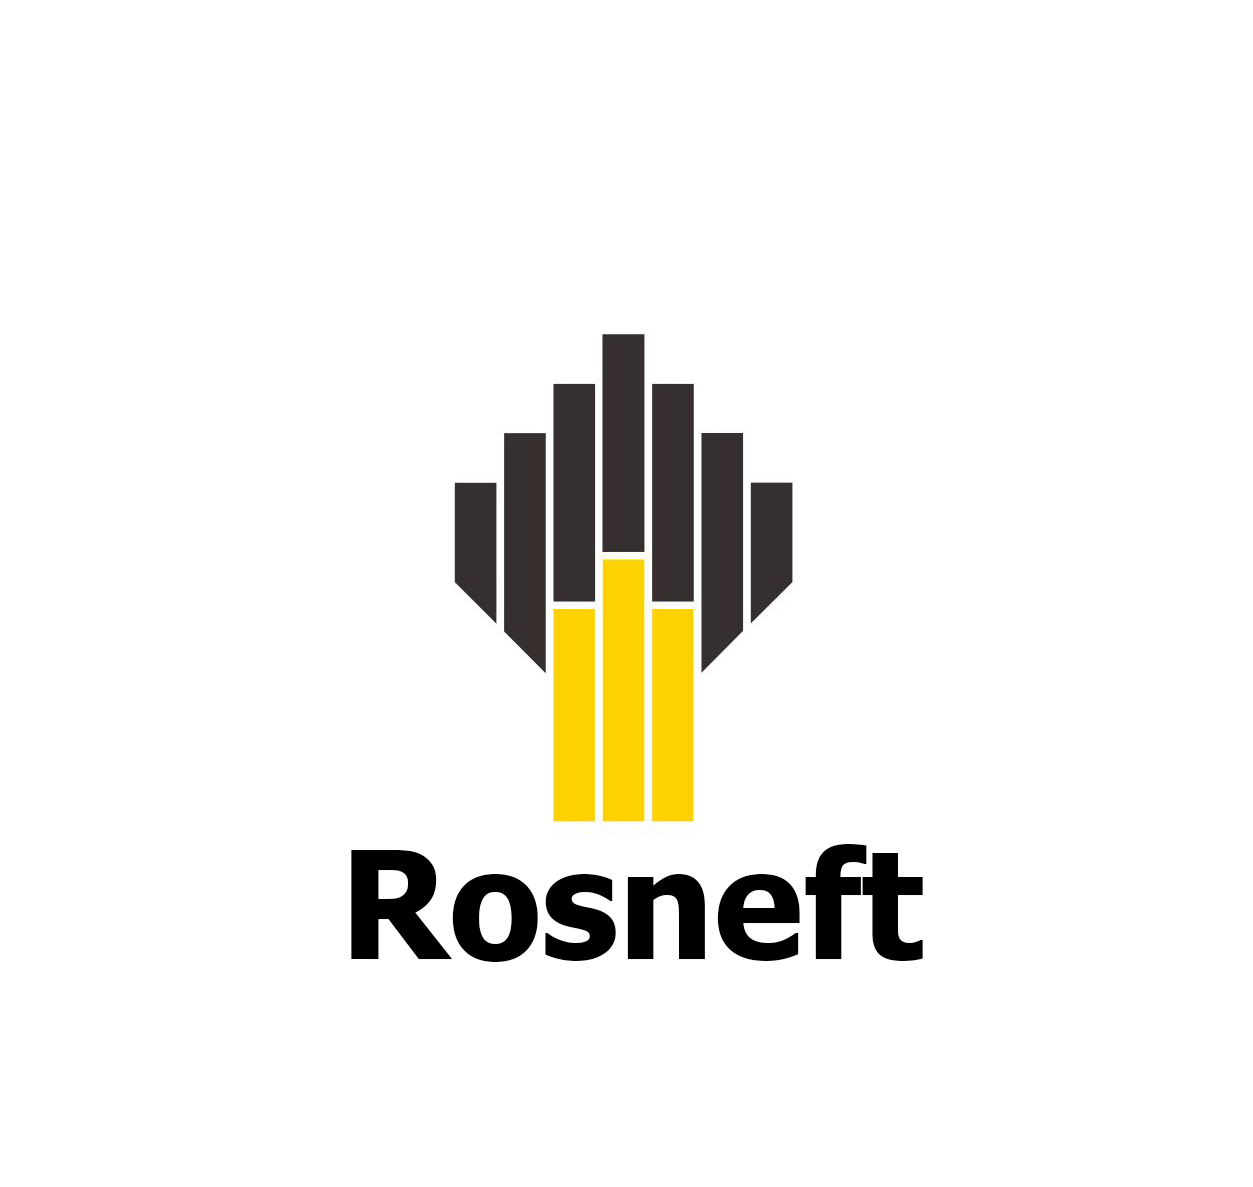 Rosneft Oil Logo - Rosneft Logo PNG Transparent Rosneft Logo.PNG Images. | PlusPNG